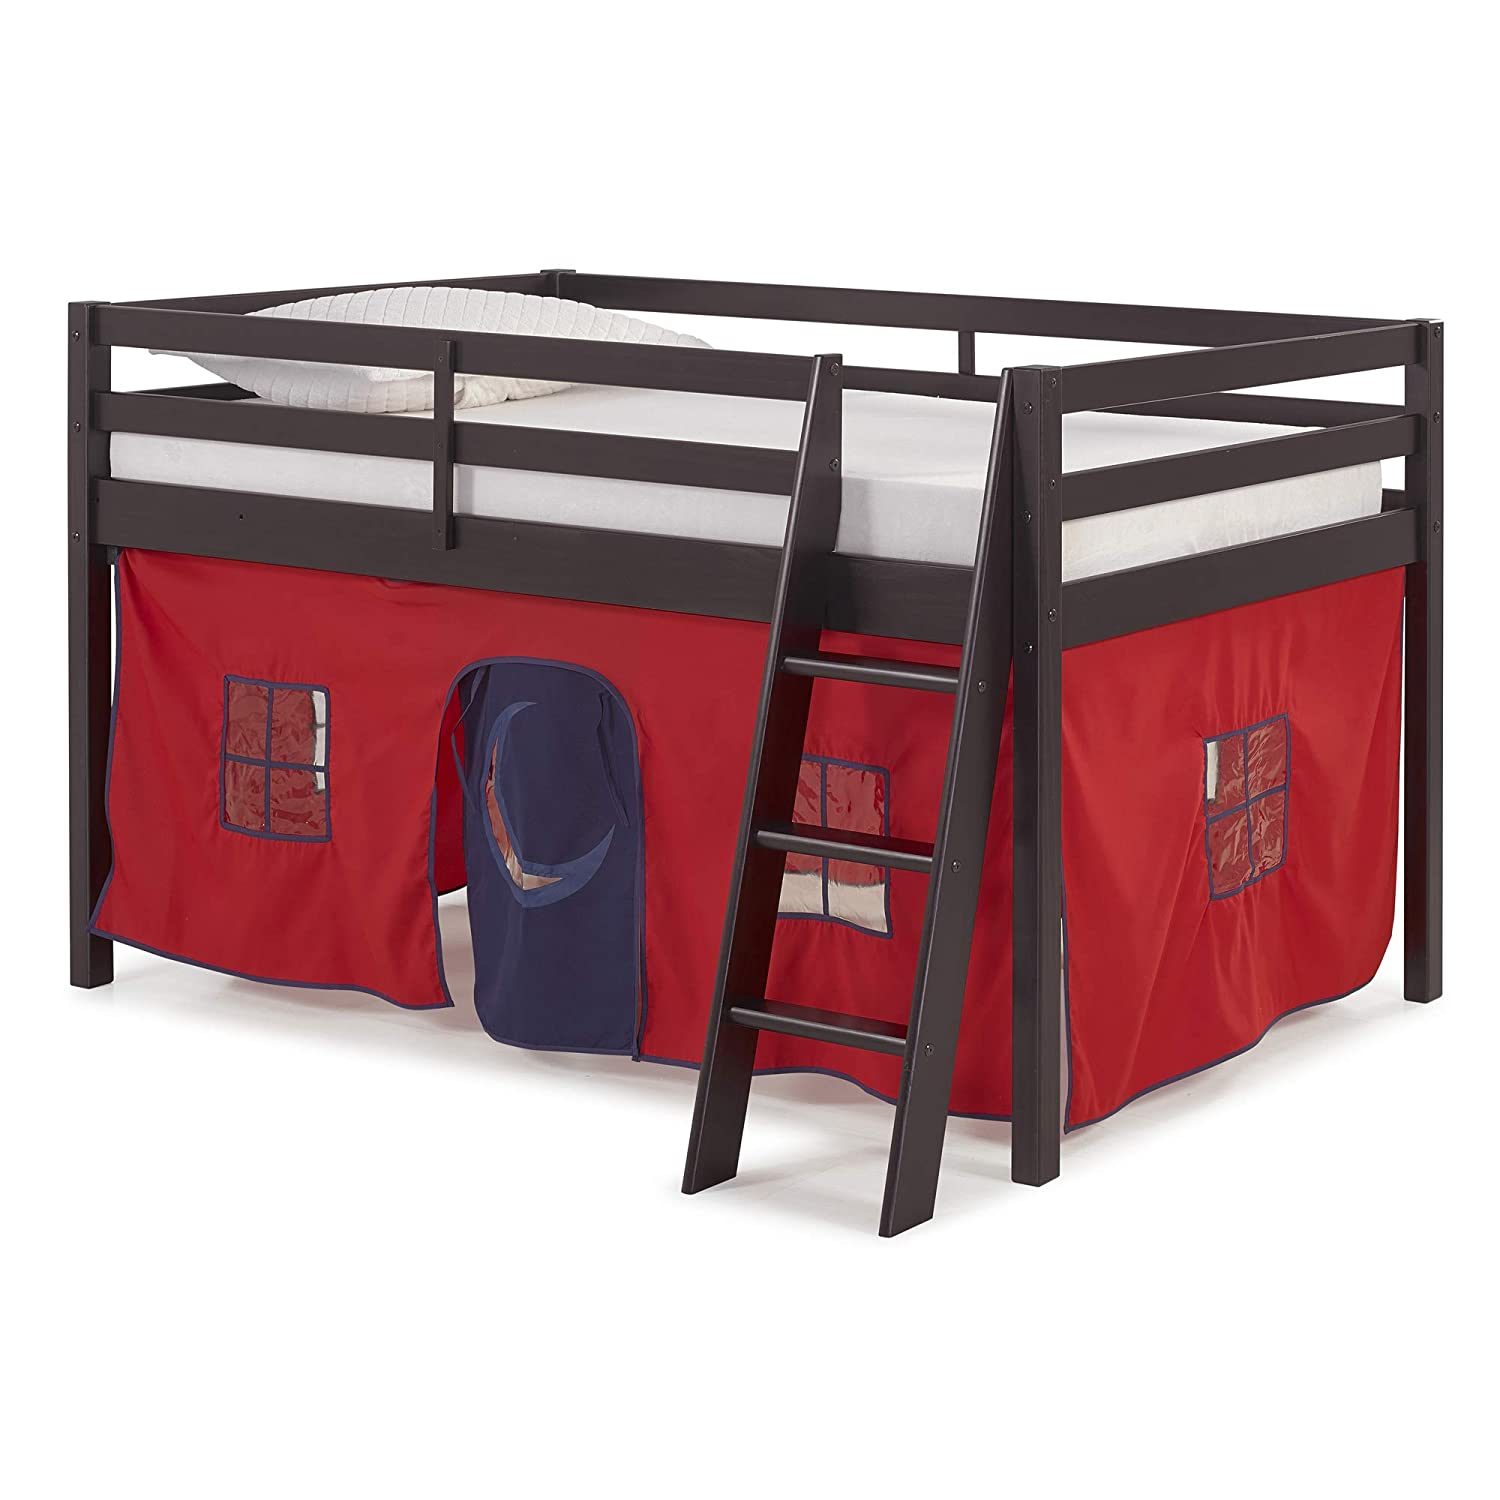 Alaterre AJRX10P0AT Roxy Wood Junior Loft Bed with Red and Blue Tent, Espresso